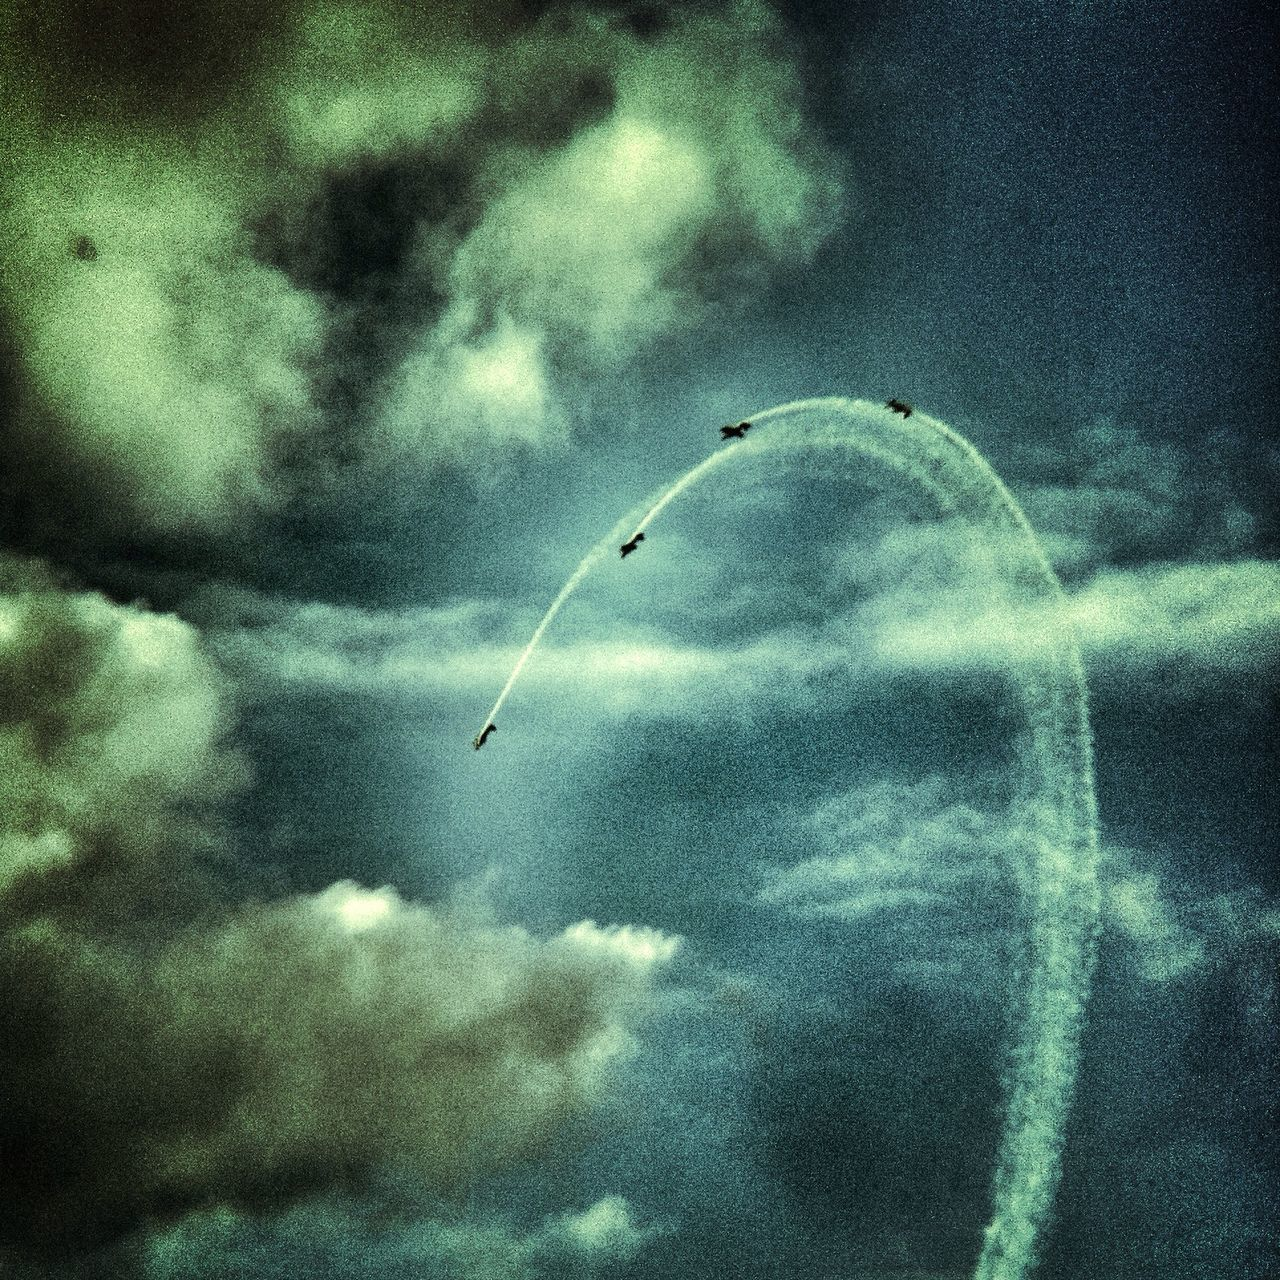 Low angle view of air show against cloudy sky